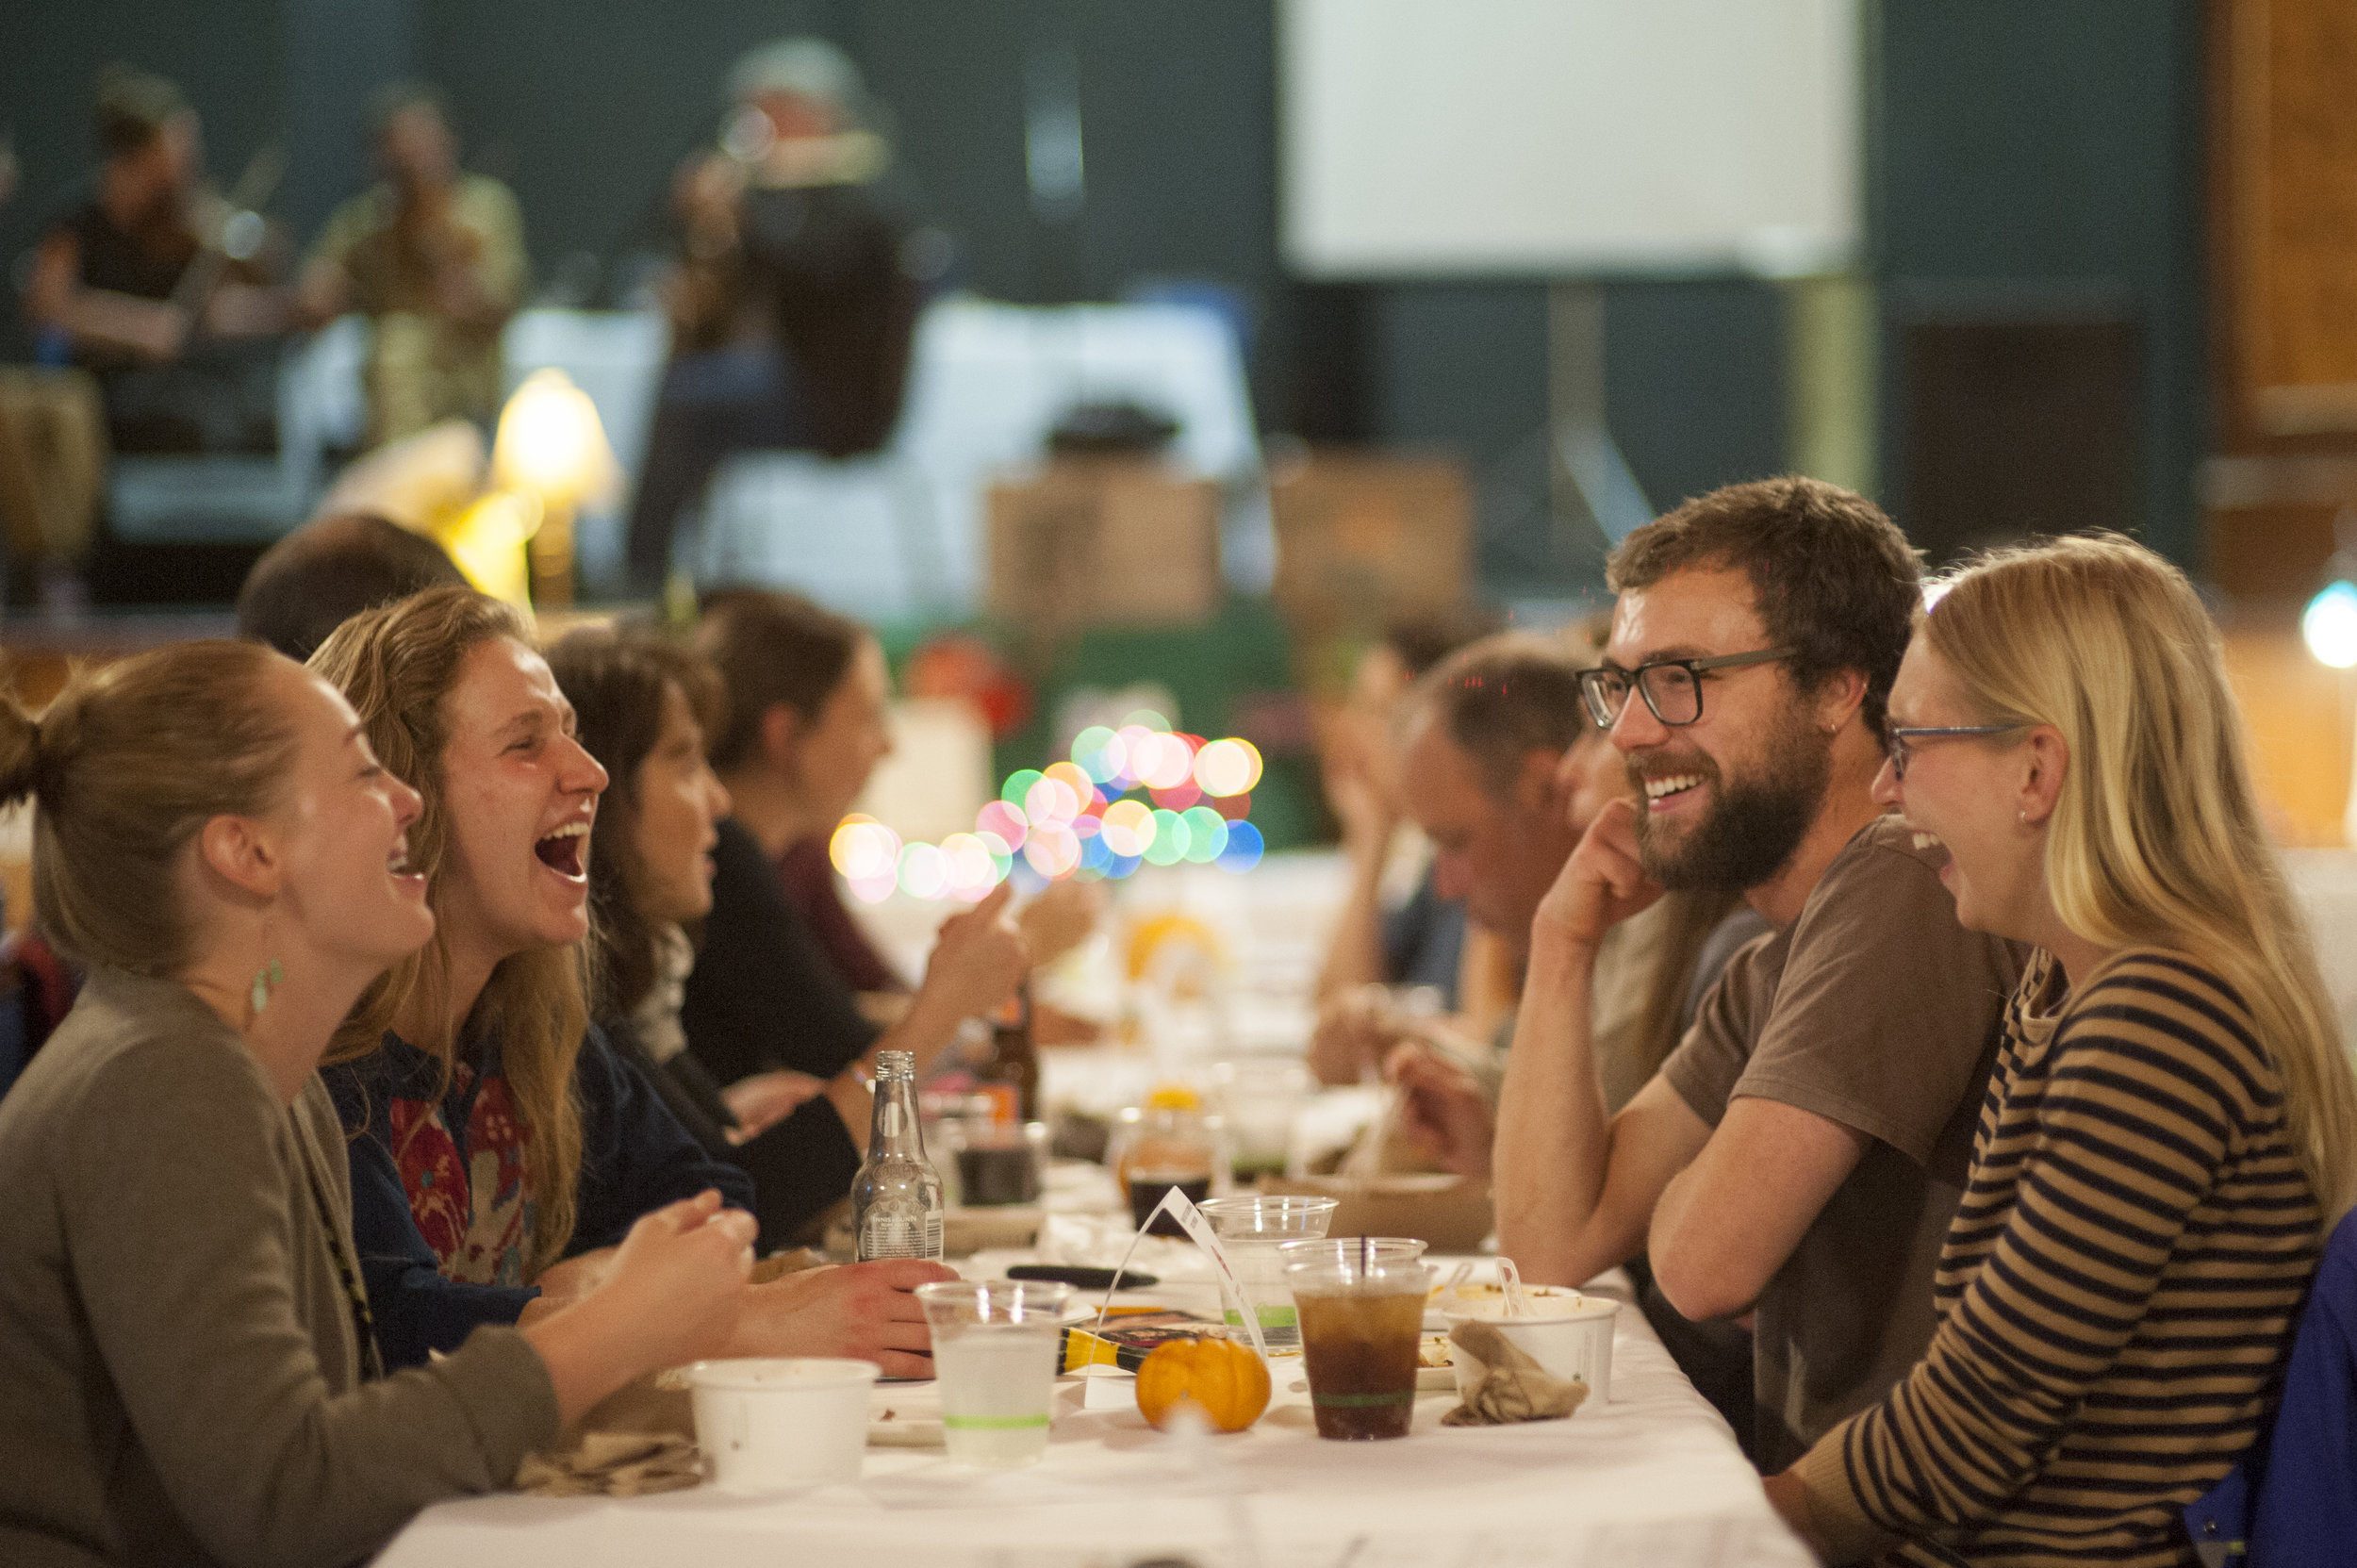 We believe in the power of putting people in the room together. With food and music, whenever possible.